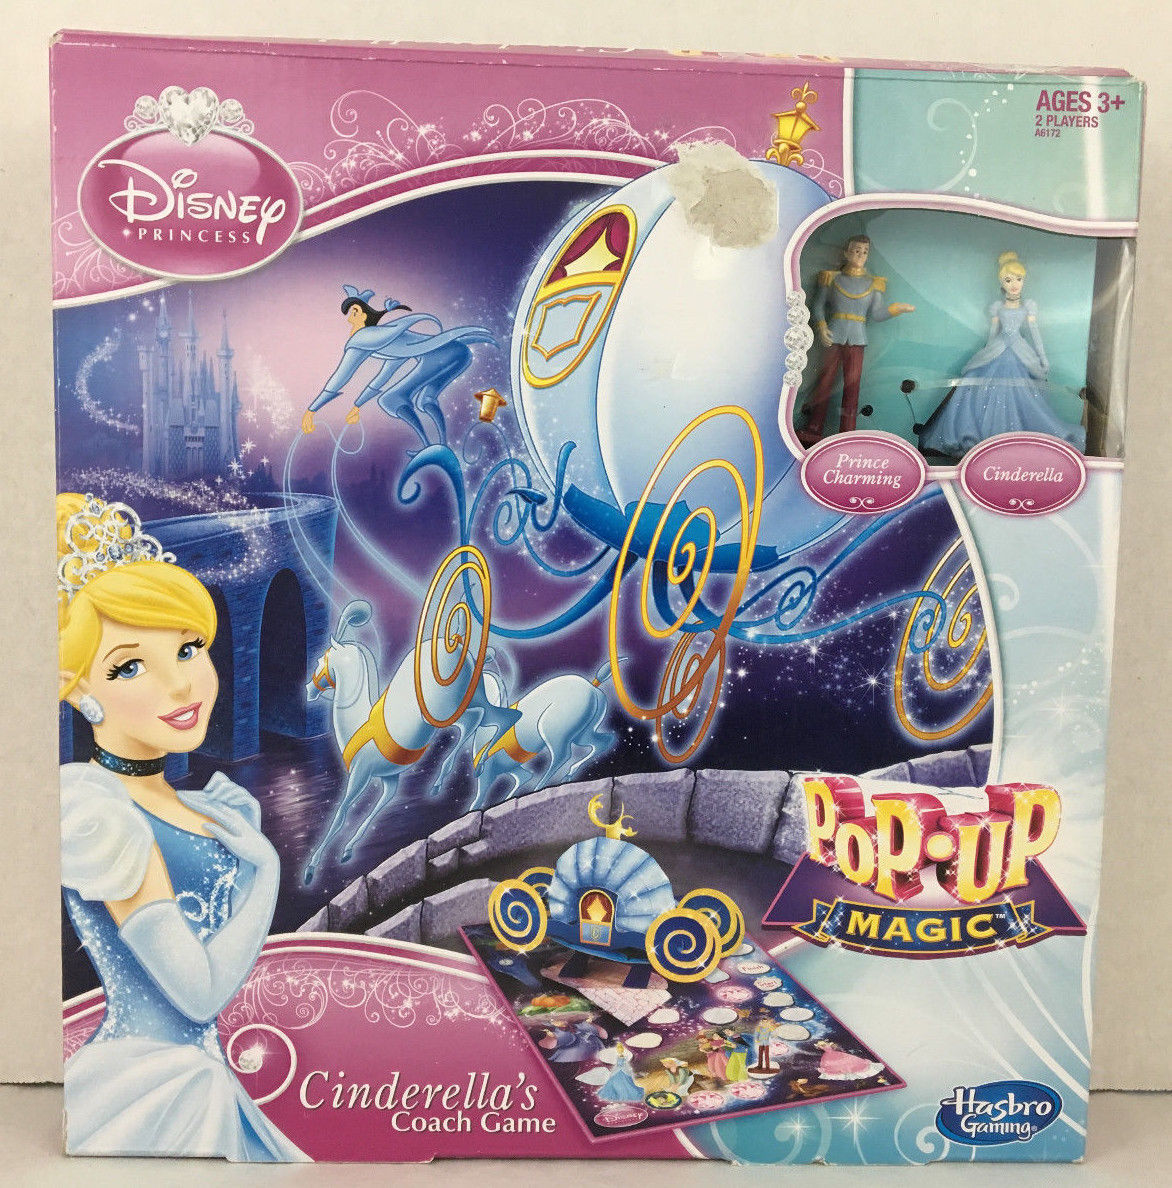 Primary image for Disney Princess Cinderellas Coach Game Pop Up Magic Age 3+ Hasbro Gaming